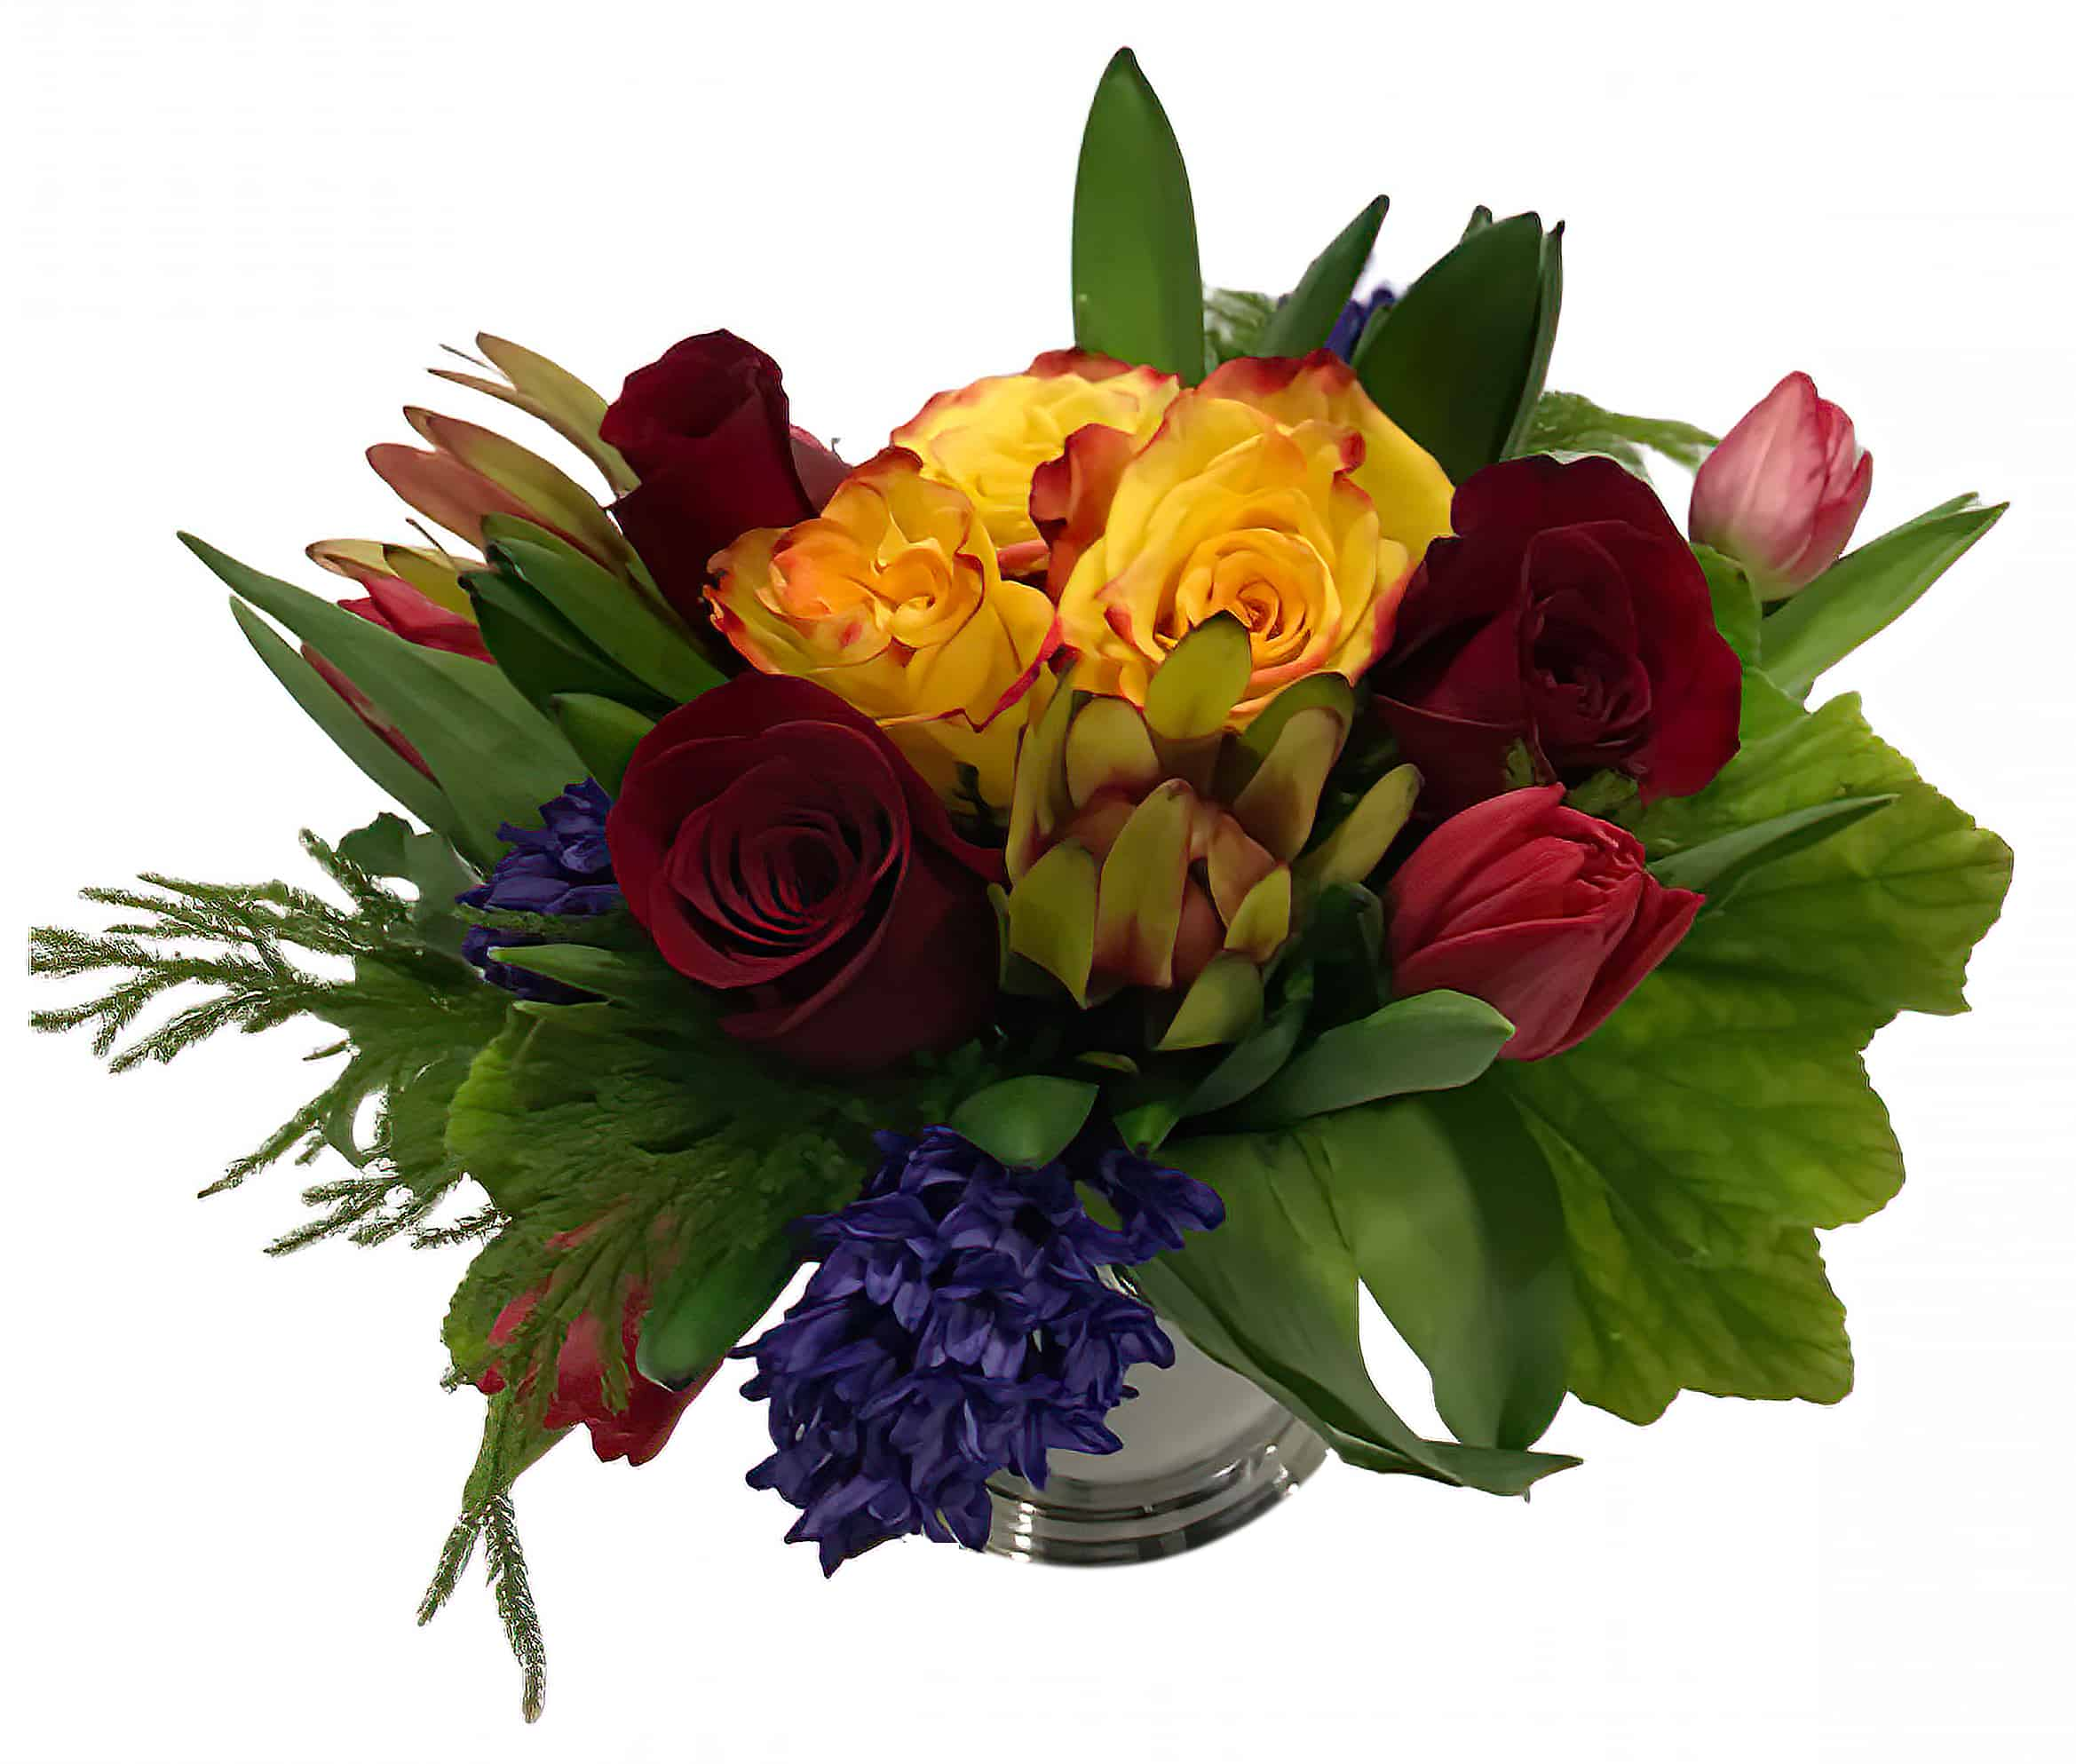 Primary Prince Floral Arrangement